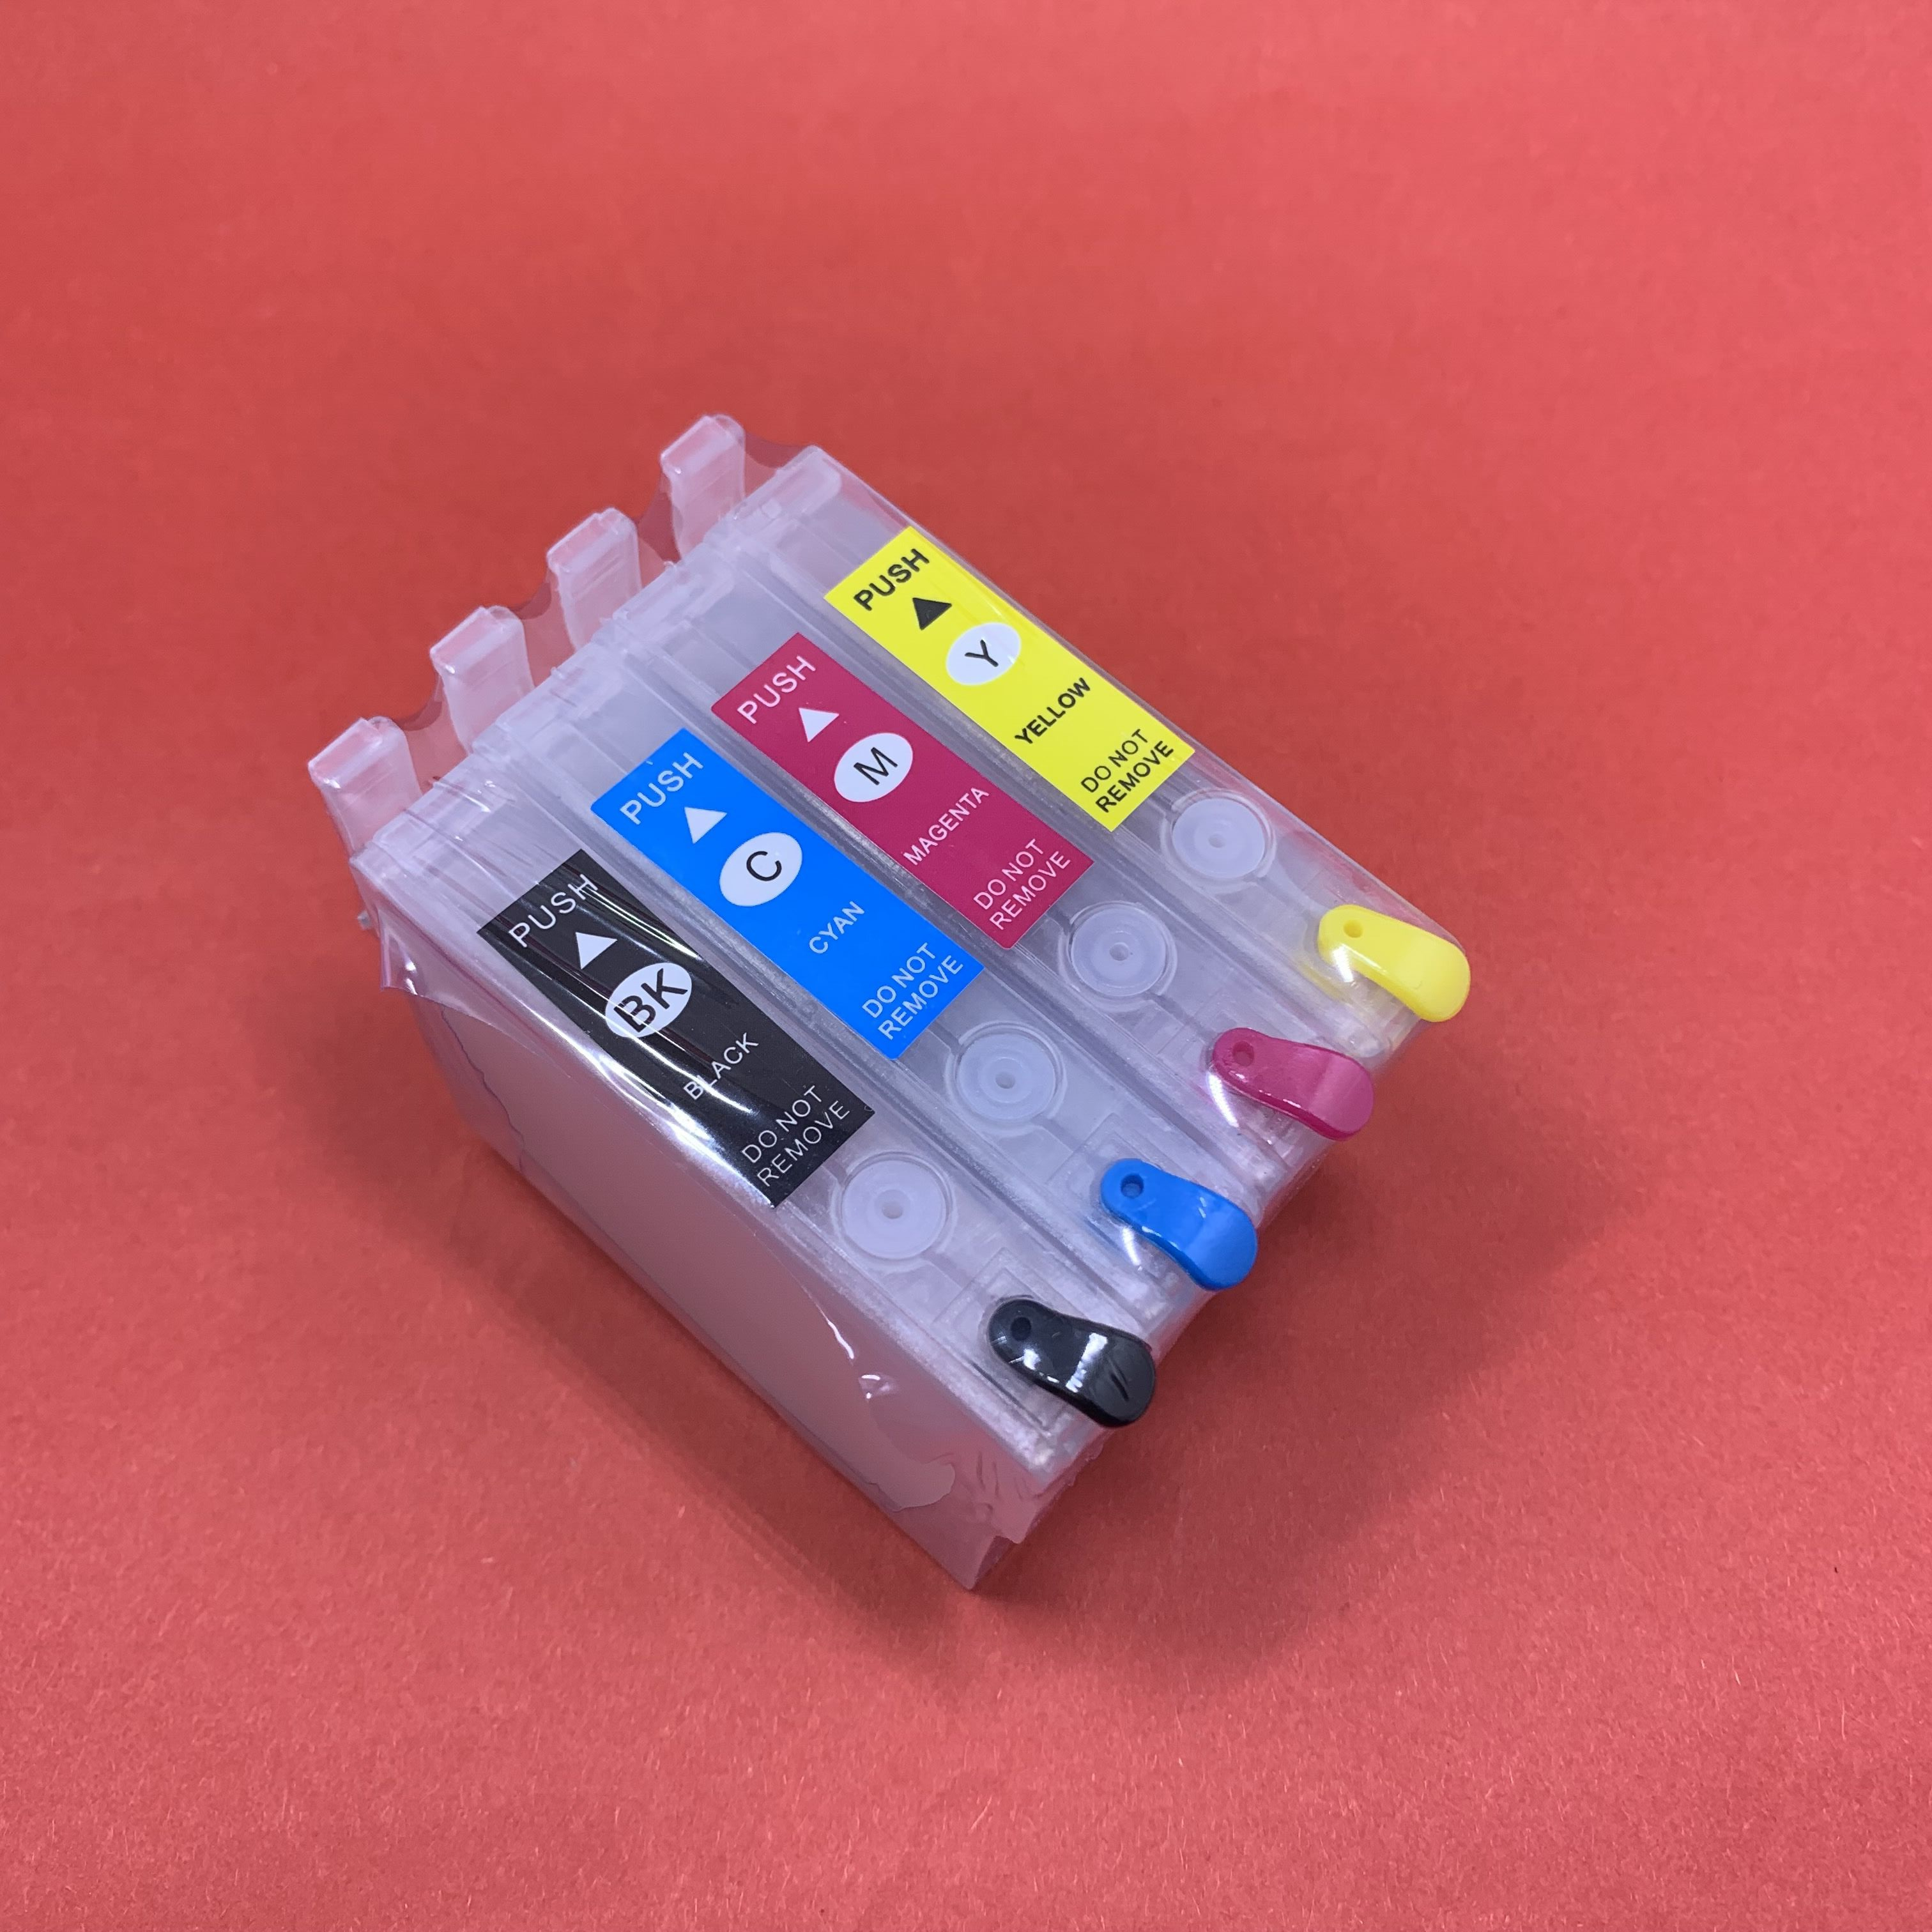 YOTAT 29XL T29 Refillable ink cartridges T2991 T2992 T2993 T2994 for <font><b>Epson</b></font> XP342 <font><b>XP345</b></font> XP442 XP445 XP-445 XP-345 XP-342 image